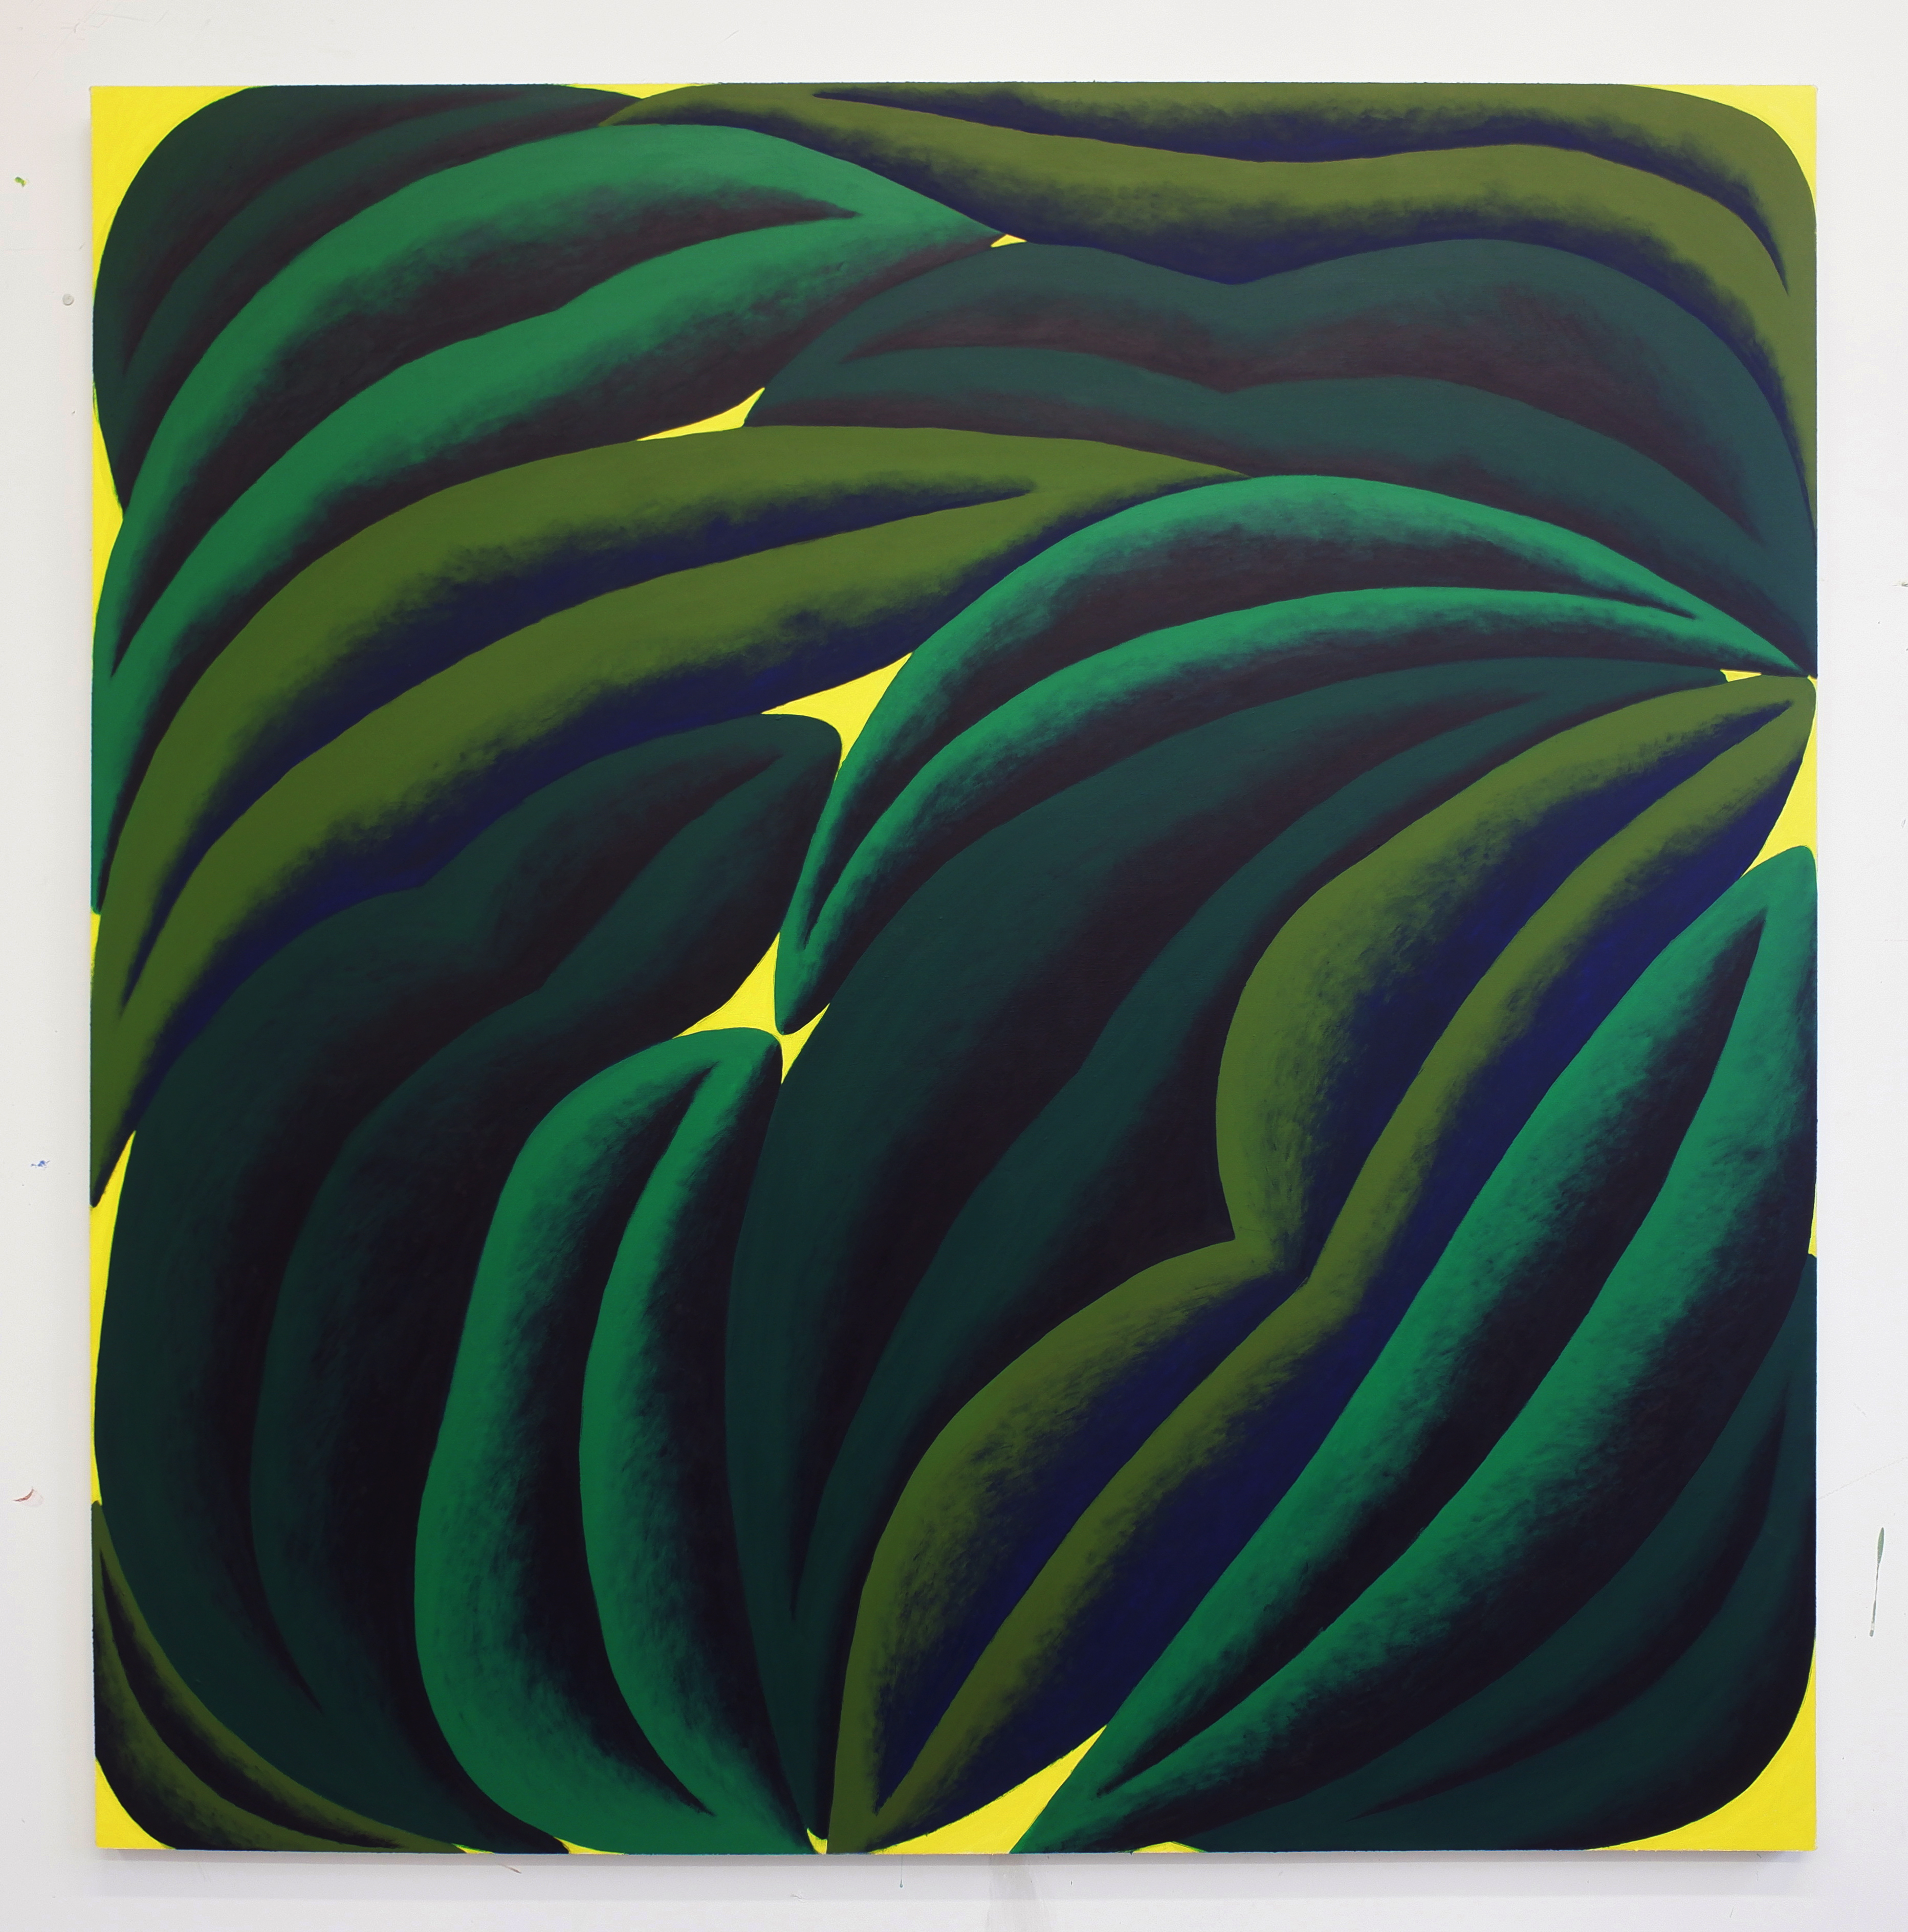 Corydon Cowansage, Green and Yellow, 2020, acrylic on canvas, 60 x 58 inches